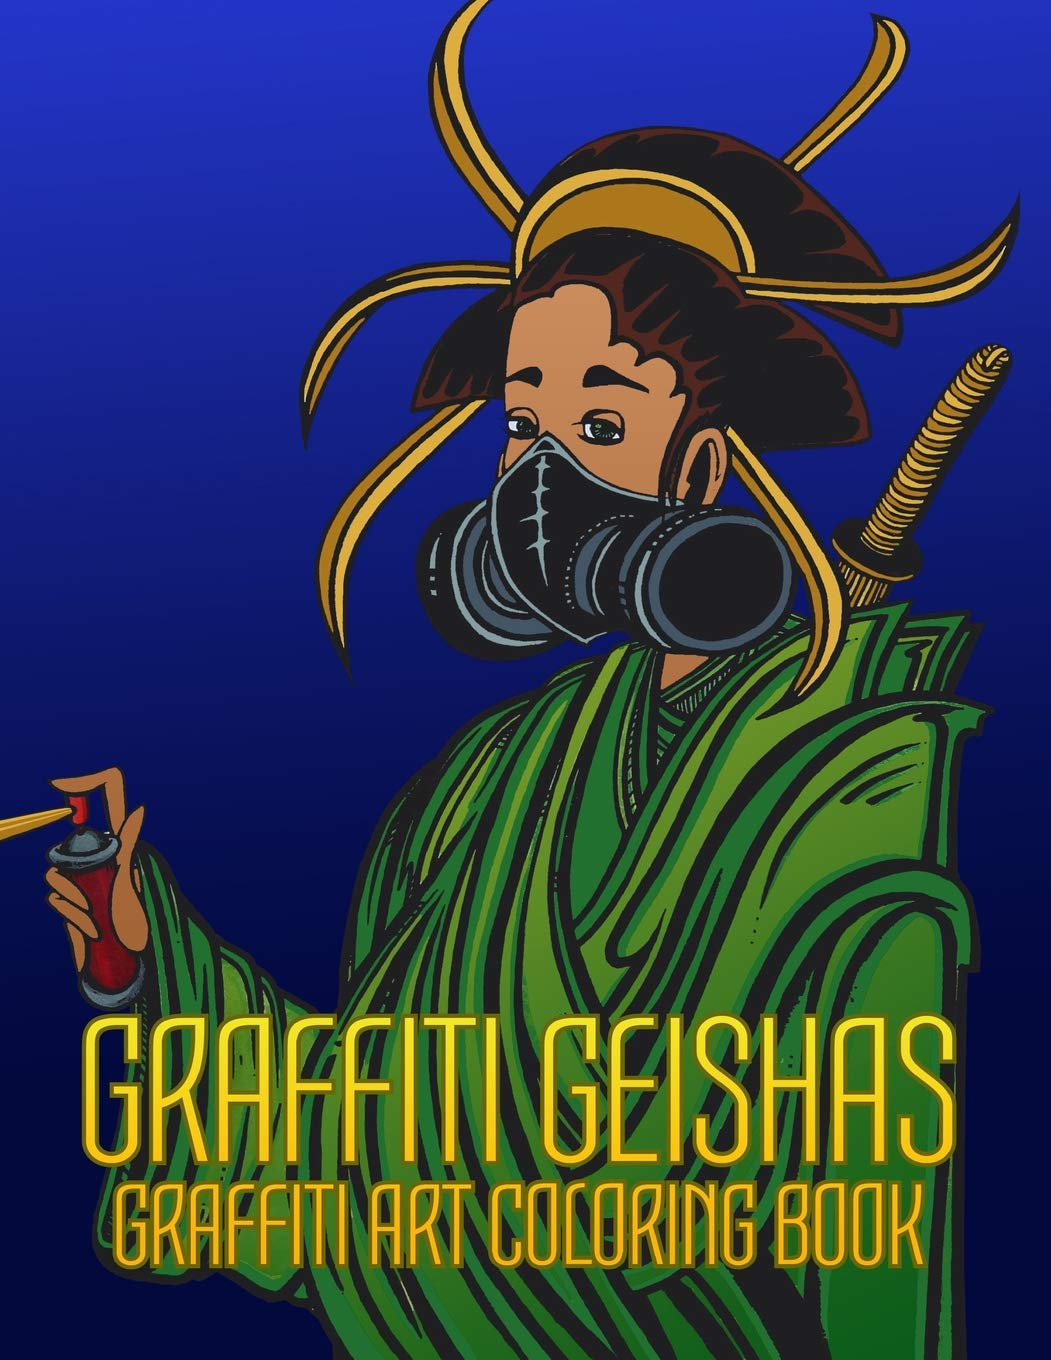 GRAFFITI GEISHAS GRAFFITI ART COLORING BOOK: Ancient ...